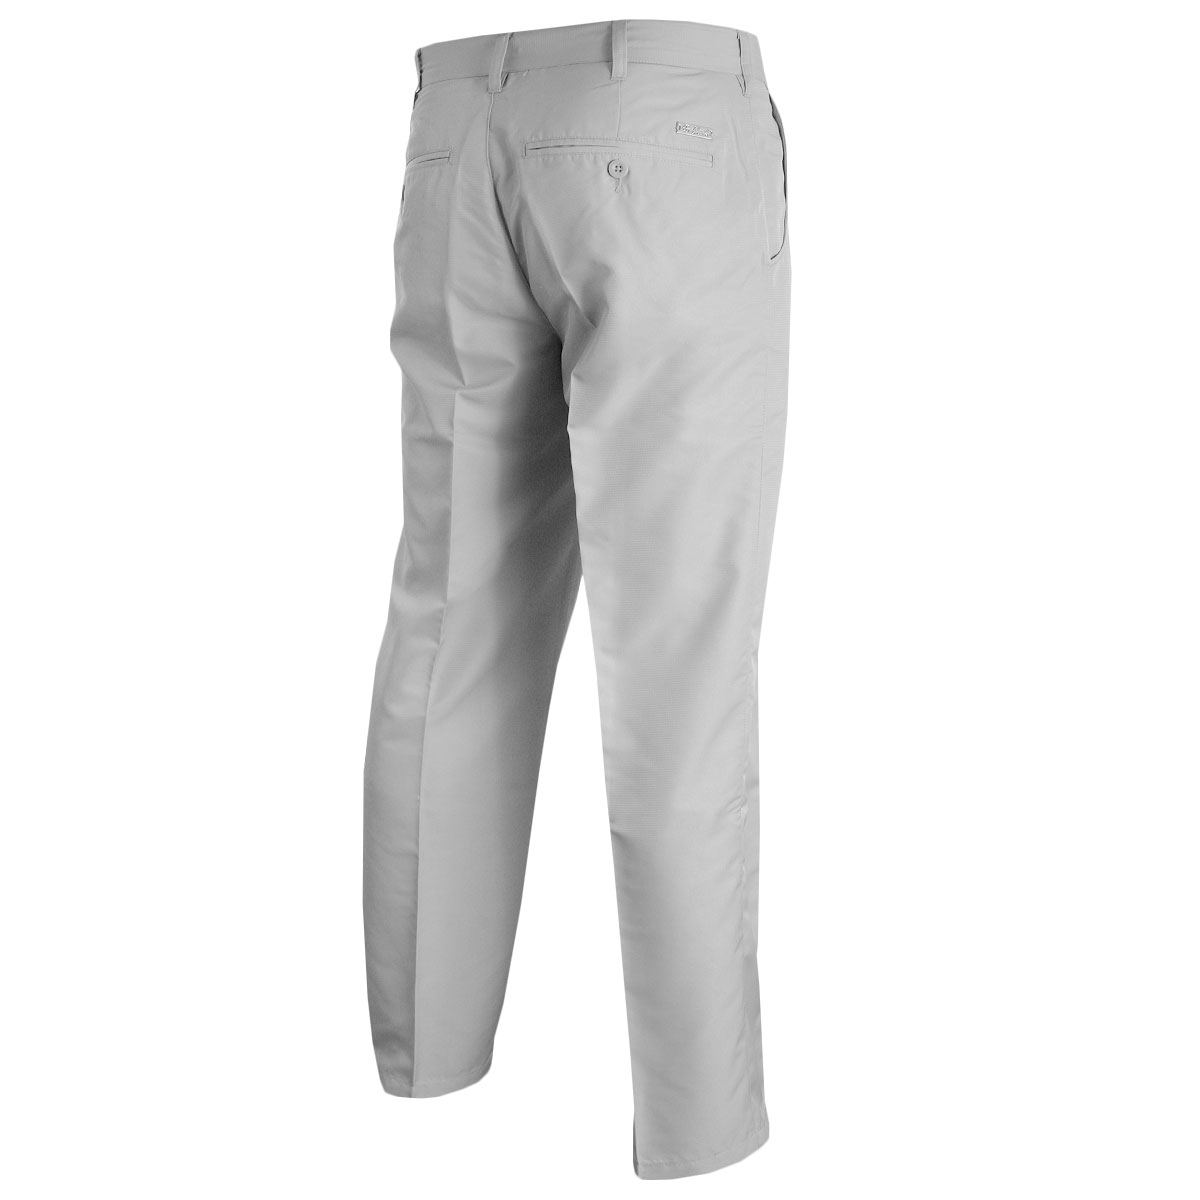 Island-Green-Mens-Tour-Golf-Trousers-Performance-Pant-57-OFF-RRP thumbnail 12